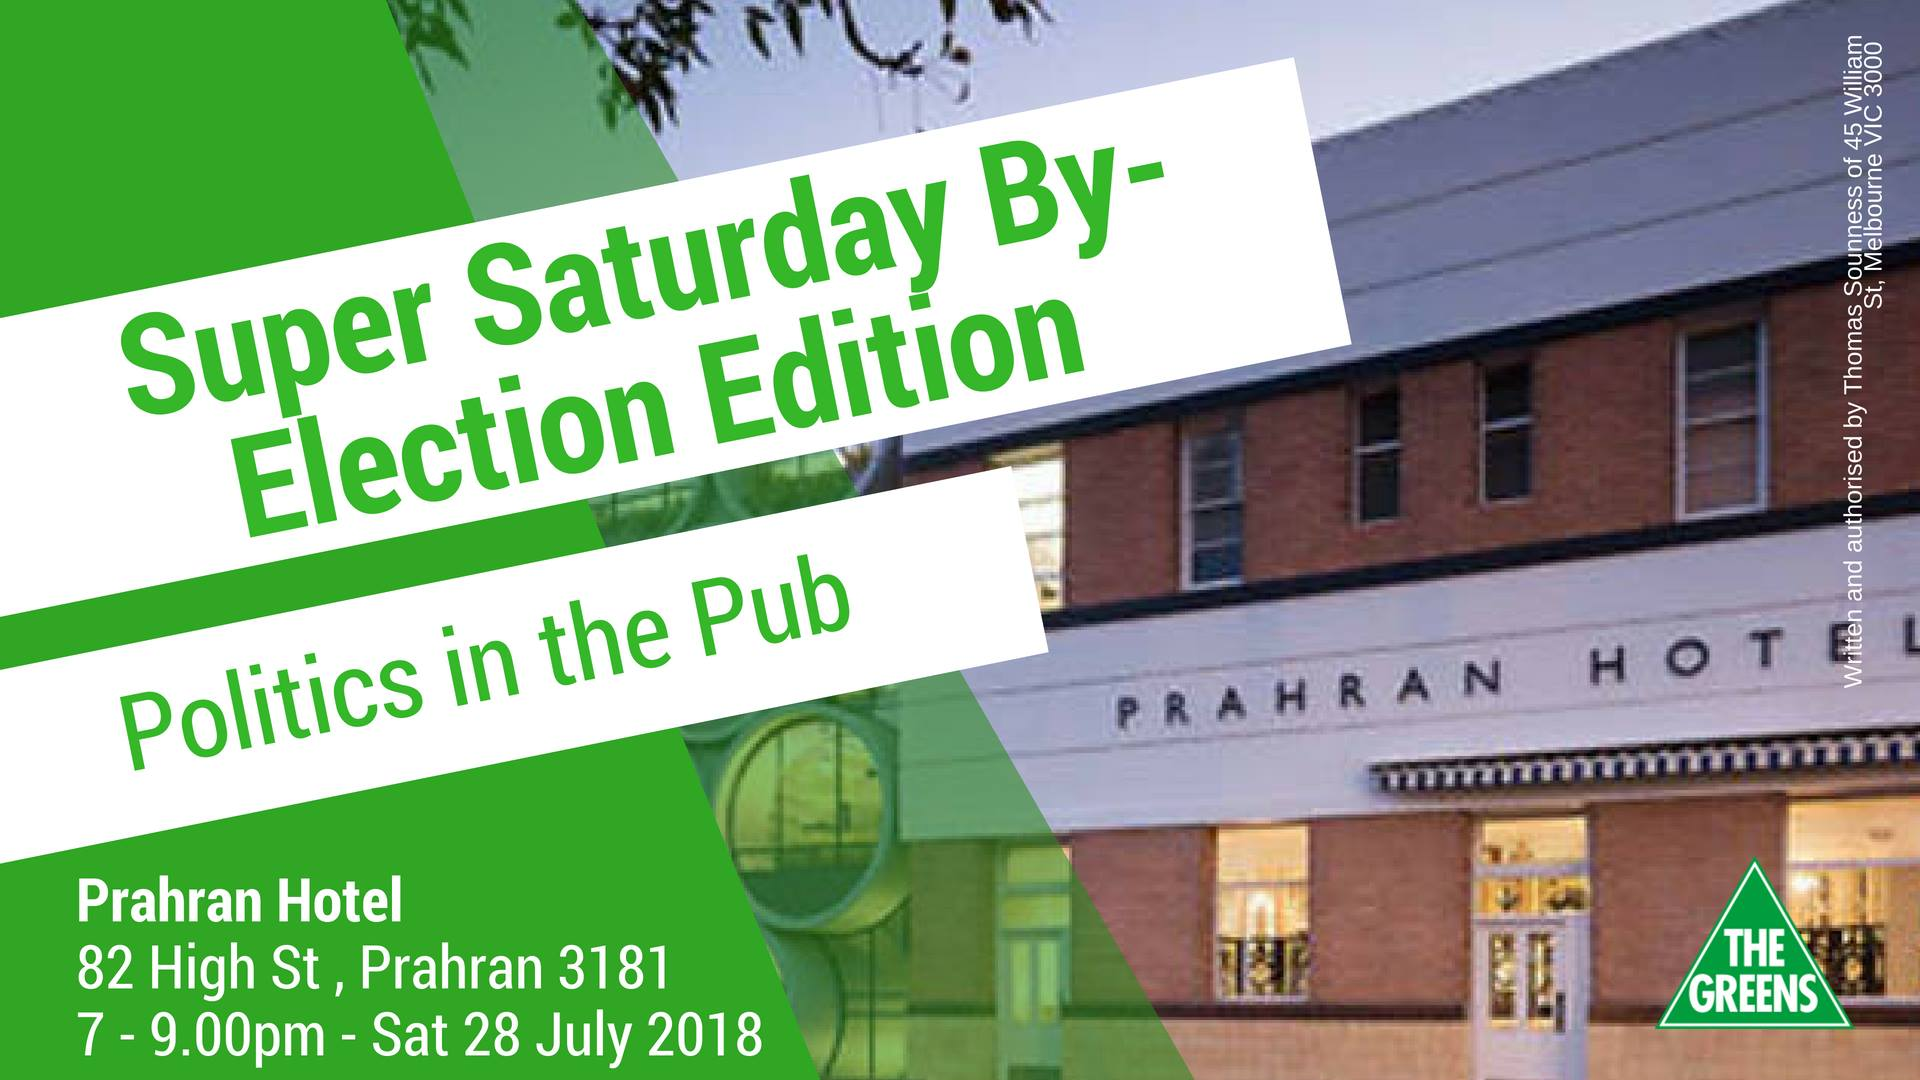 Politics in the Pub - Super Saturday By-election Edition